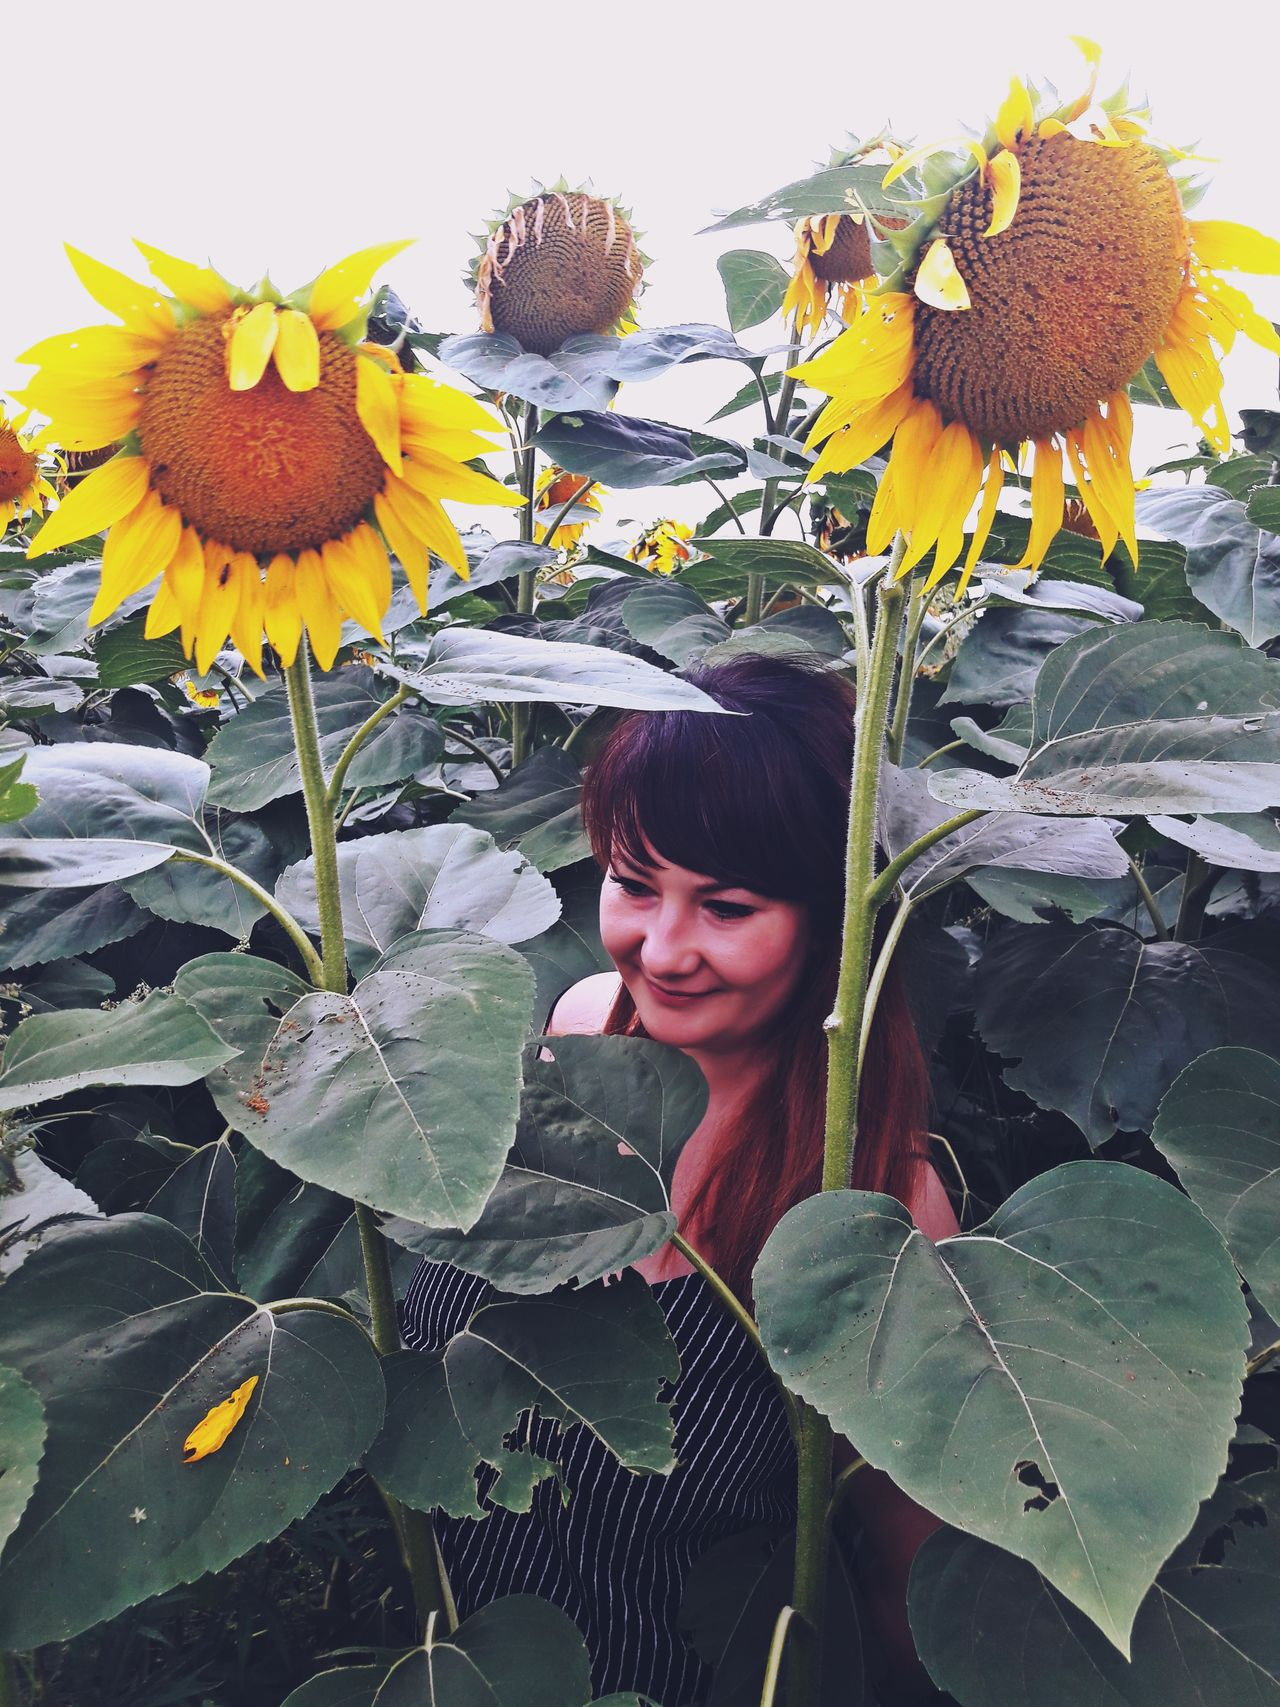 Beautiful Woman Beauty In Nature Close-up Day Flower Flower Head Fragility Freshness Growth Leaf Lifestyles Nature One Person Outdoors People Plant Real People Sunflower Yellow Young Adult Young Women